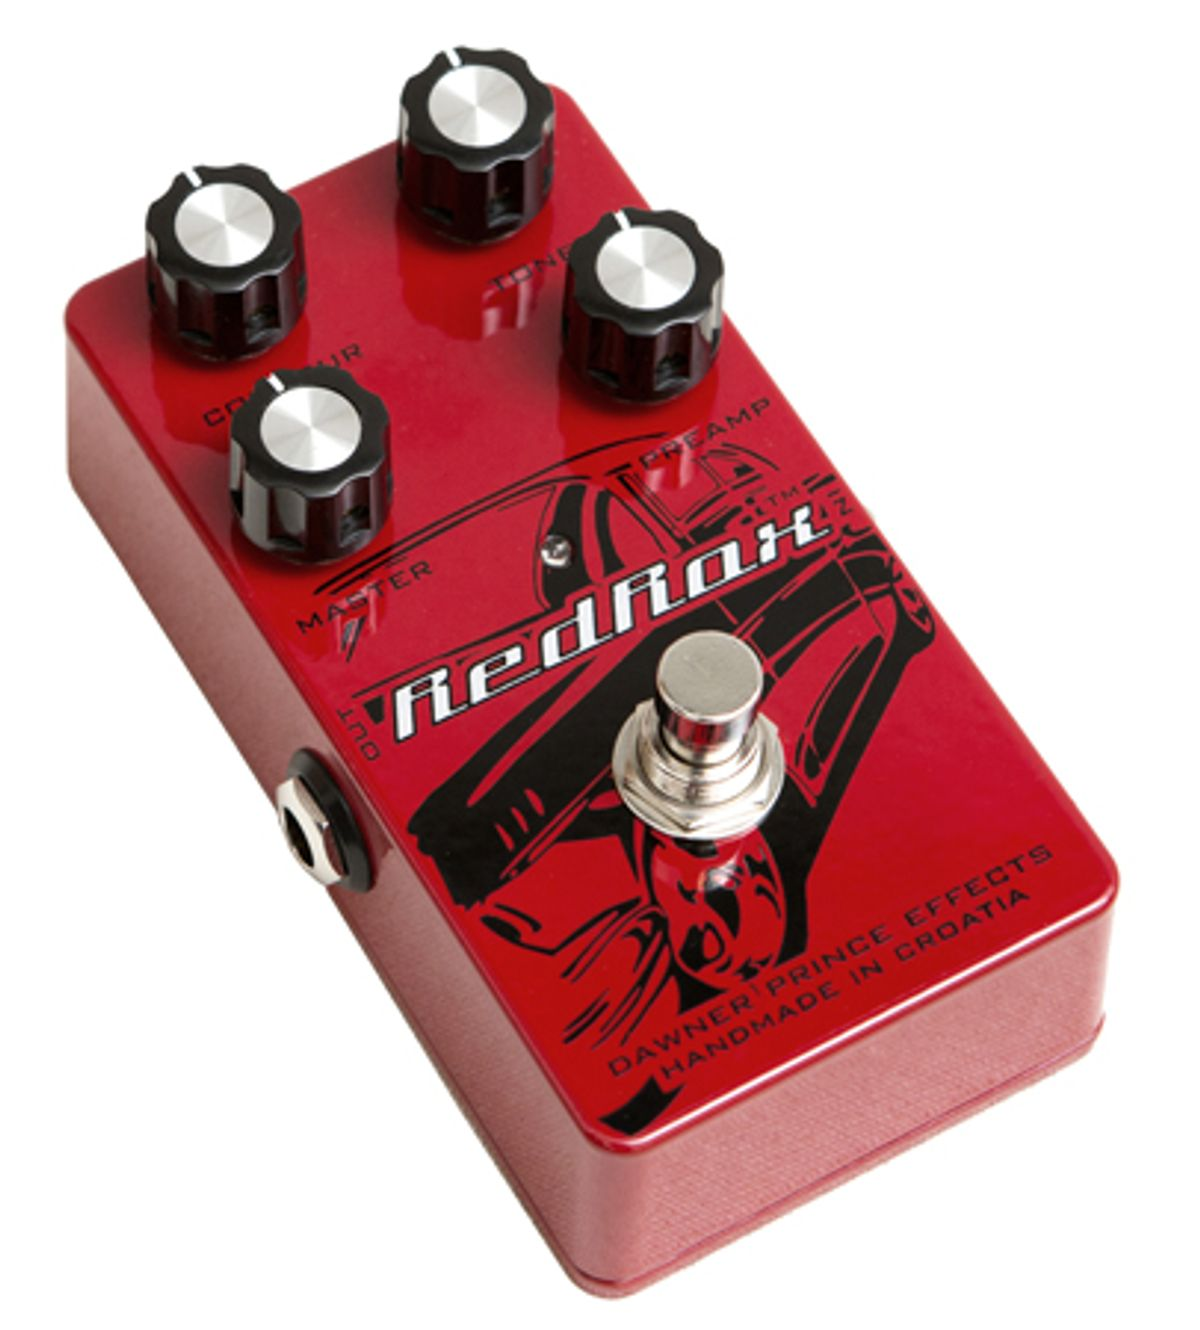 Dawner Prince Effects Announces Red Rox Distortion Pedal